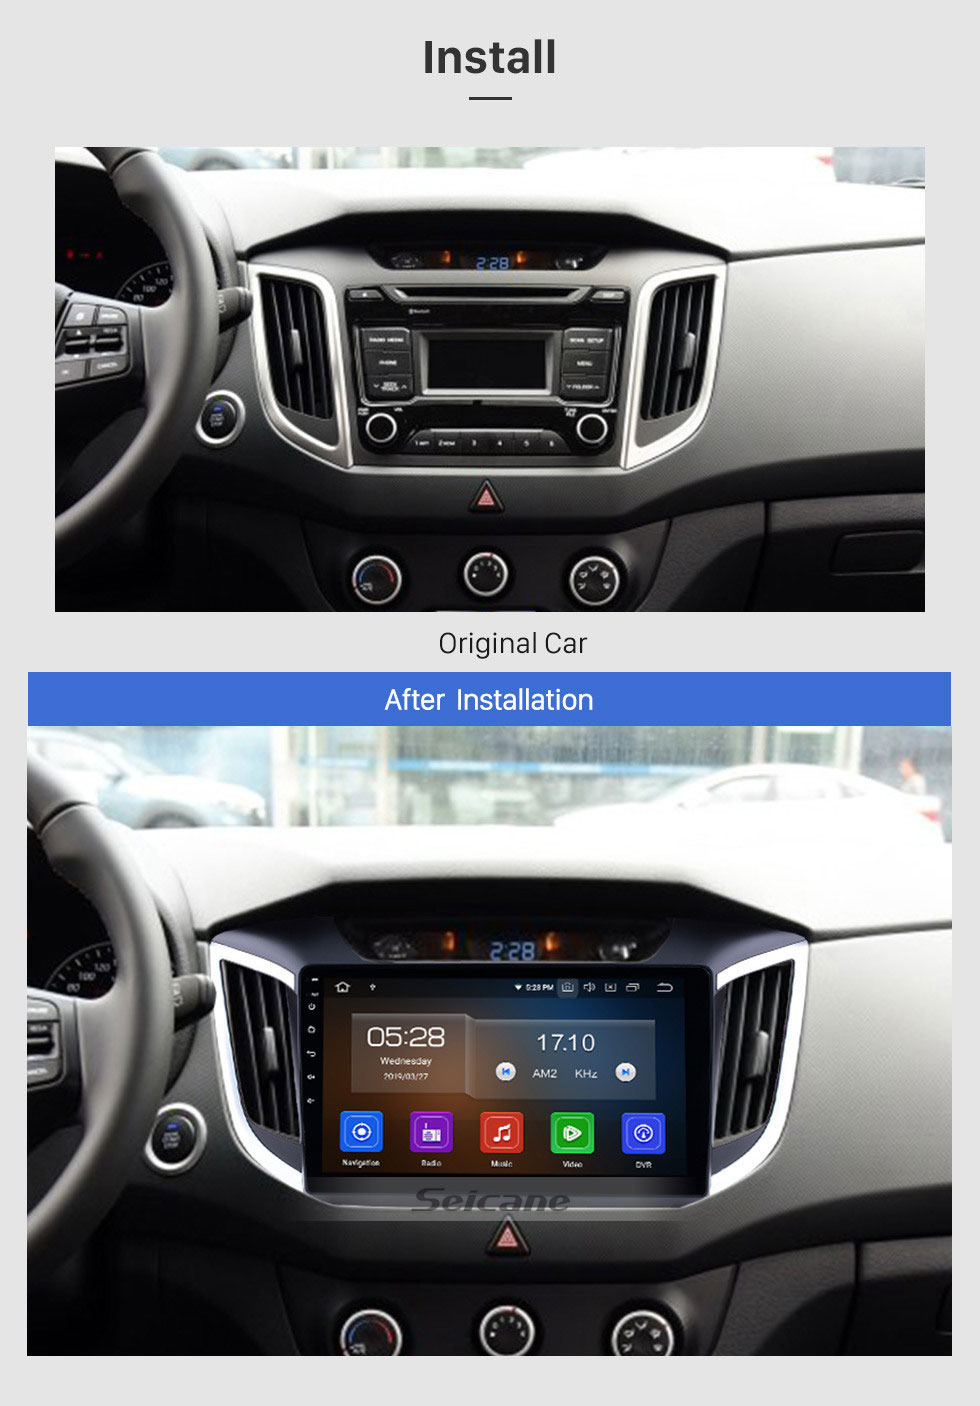 Seicane 10.1 Inch Android 10.0 Radio For 2014 2015 HYUNDAI IX25 Creta with 3G WiFi Bluetooth GPS Navigation system Capacitive Touch Screen TPMS DVR OBD II Rear camera AUX Headrest Monitor Control USB SD Video